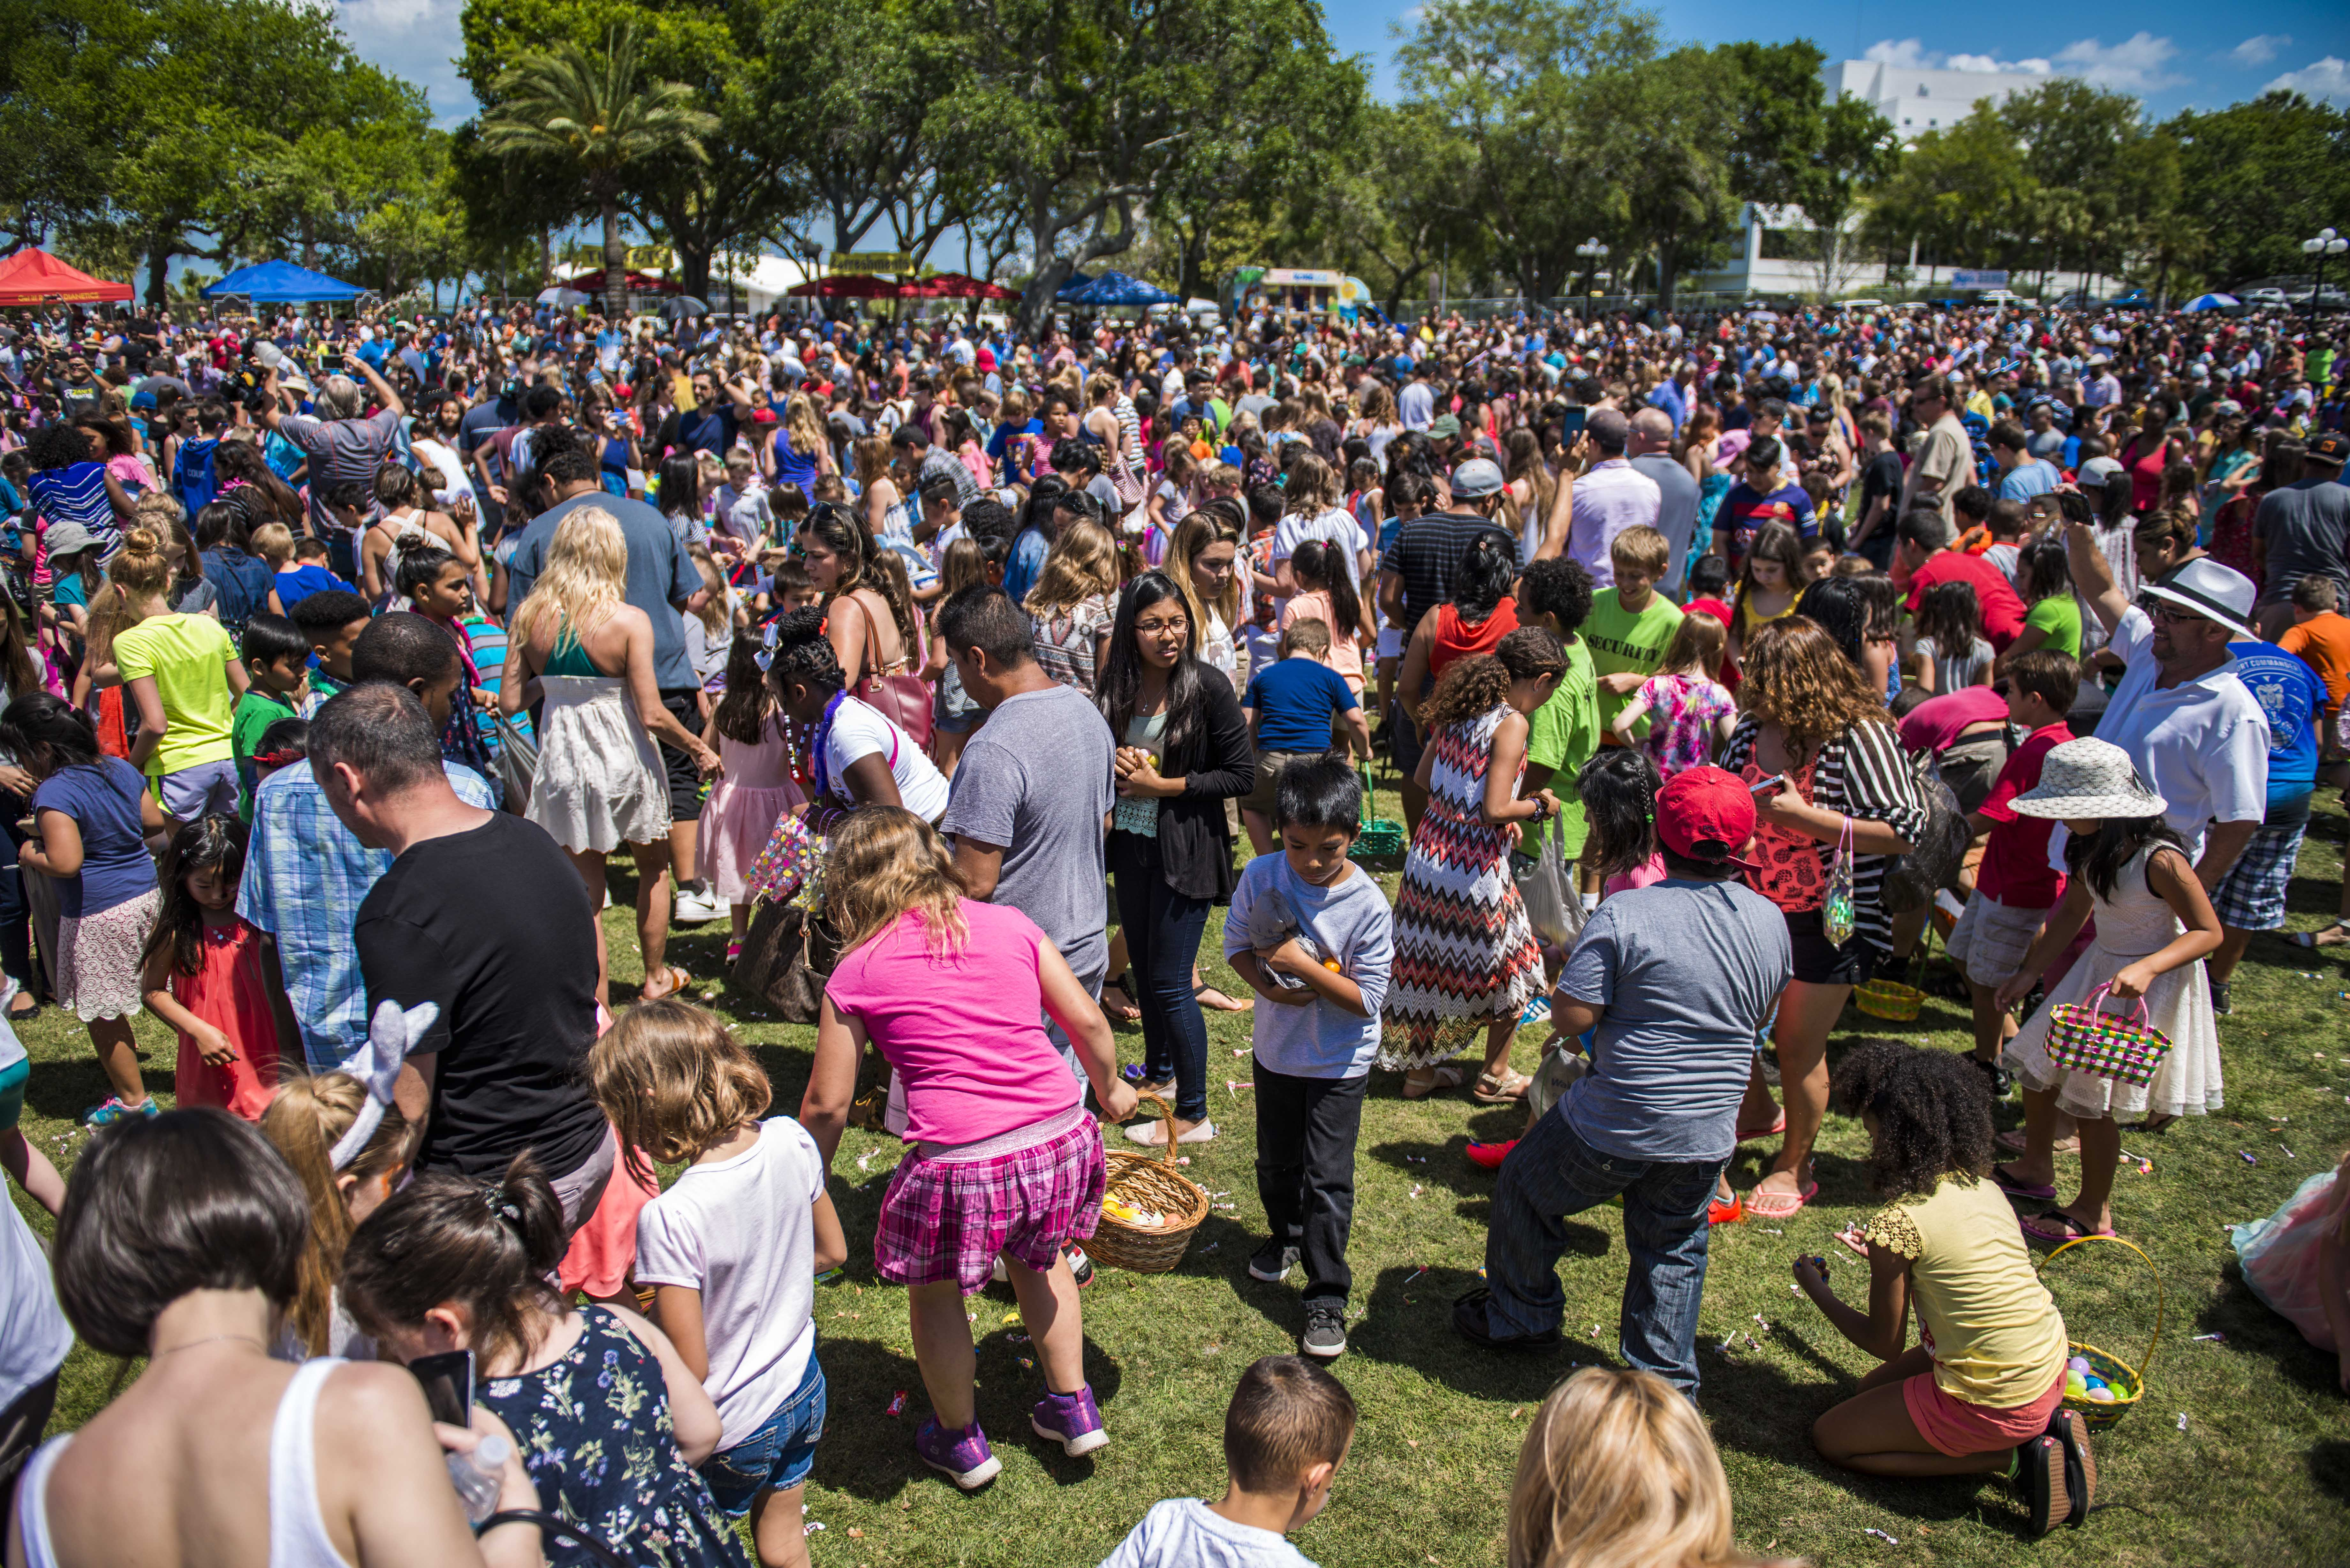 Over 8500 children_parents_grandparents and others were in Coachman Park on Easter Sunday